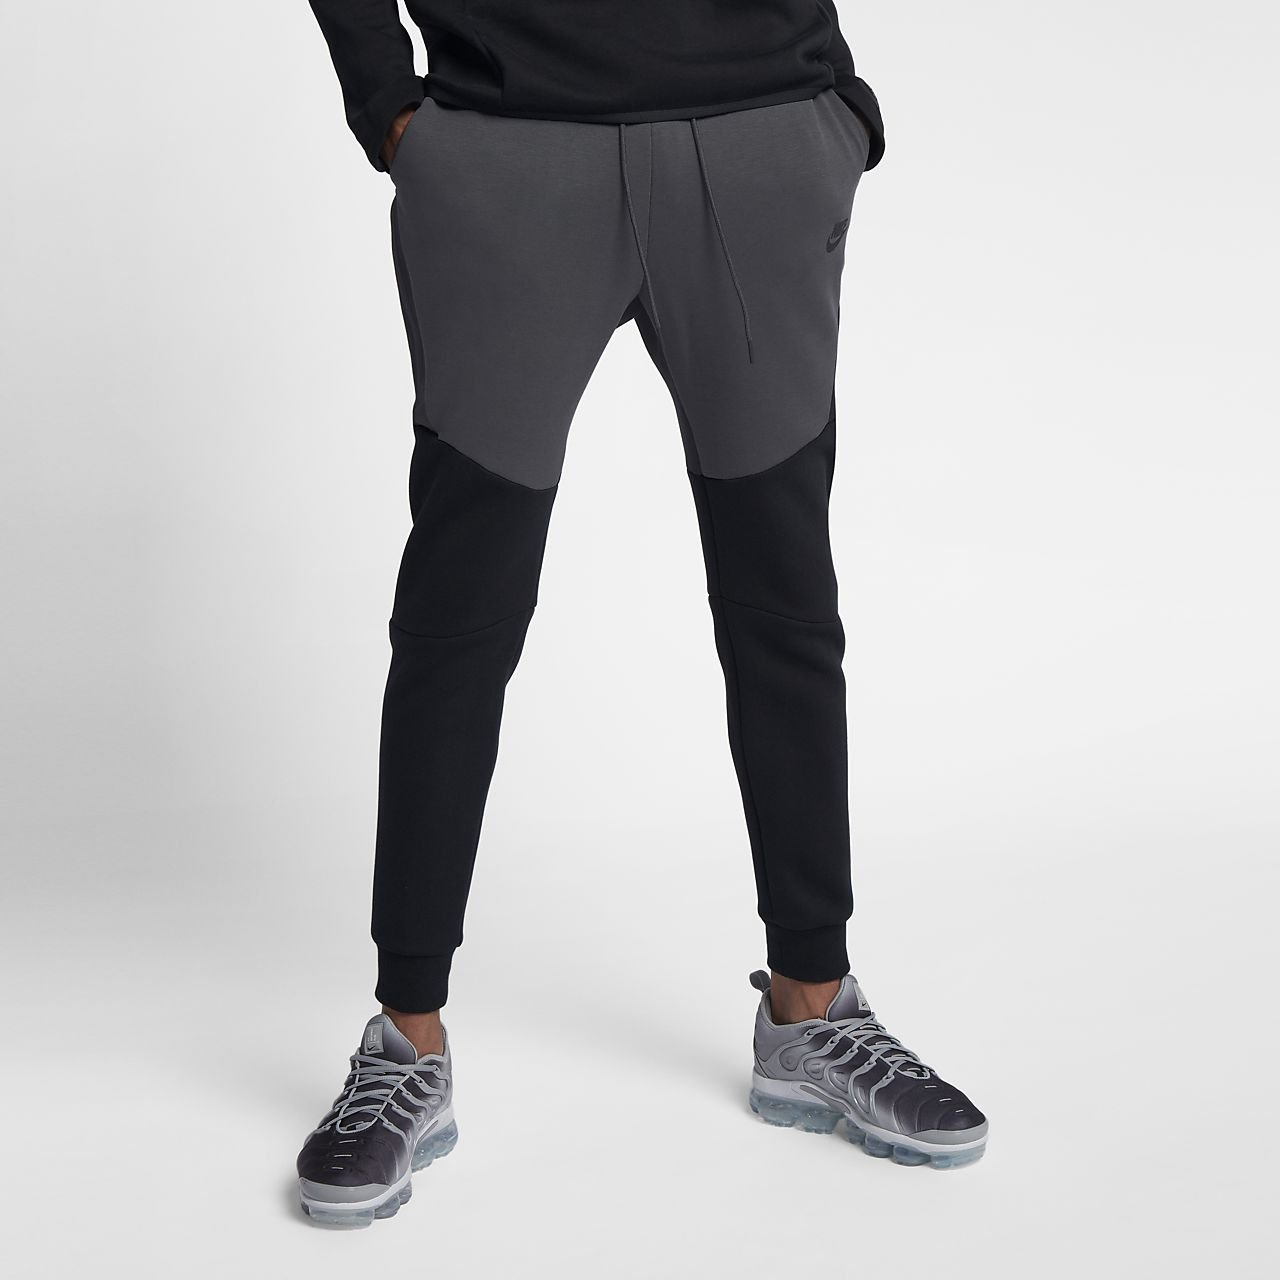 nike sportswear tech fleece men 39 s joggers. Black Bedroom Furniture Sets. Home Design Ideas